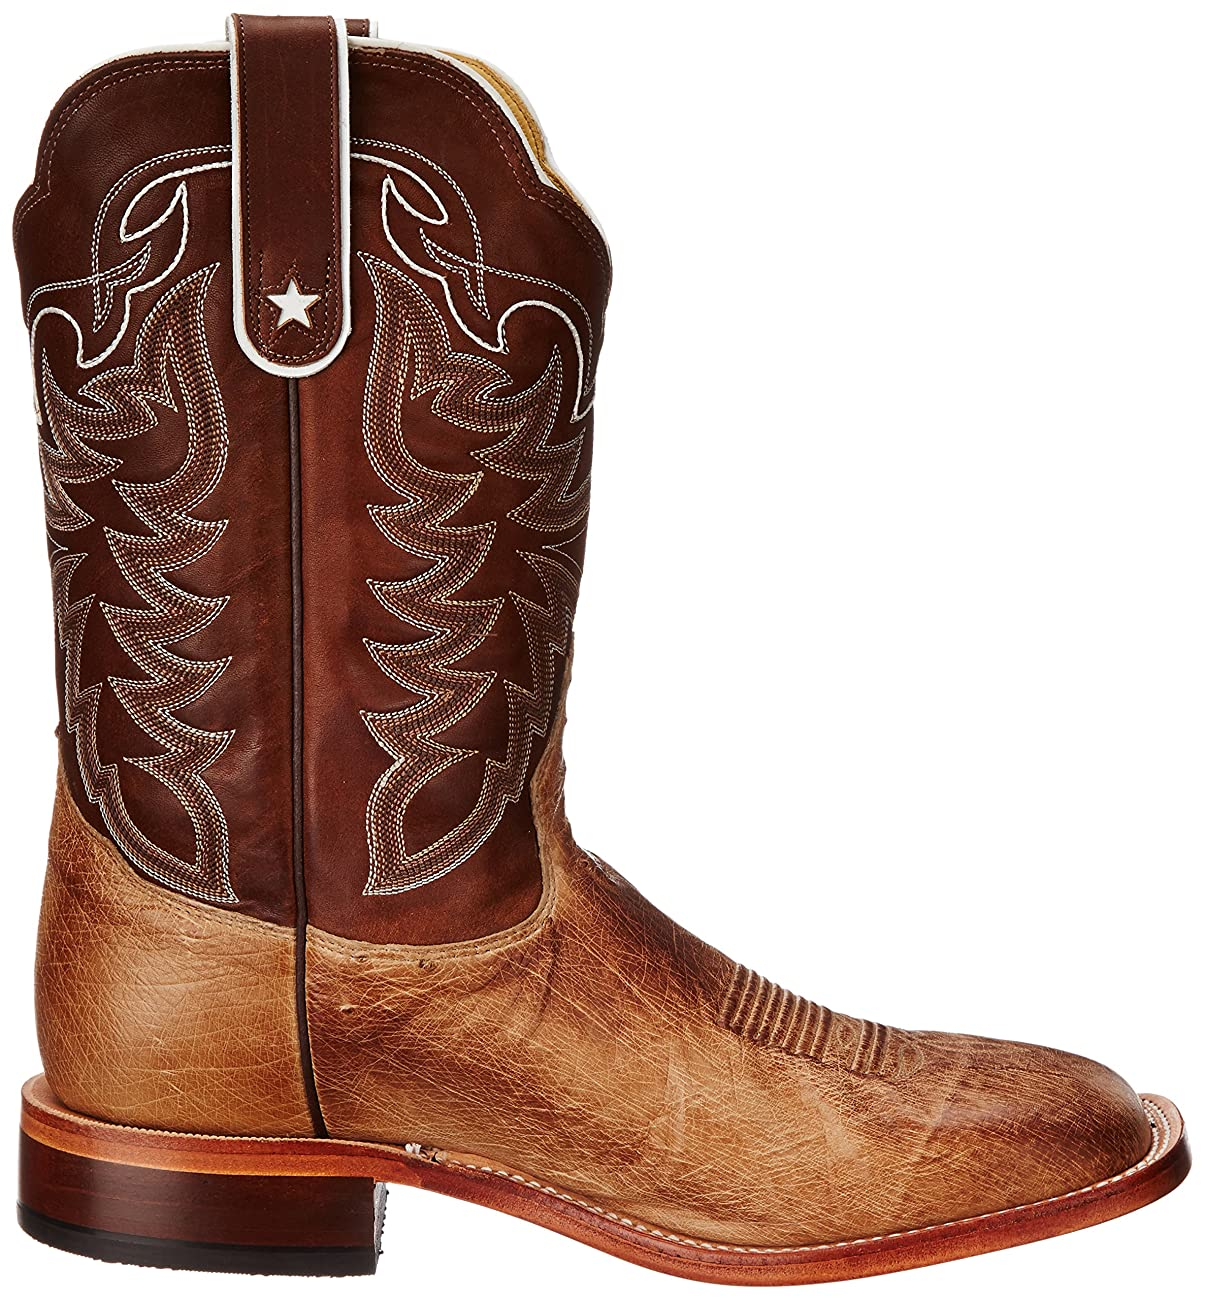 Tony Lama Men's Vintage Smooth Ostrich Western Boot 5